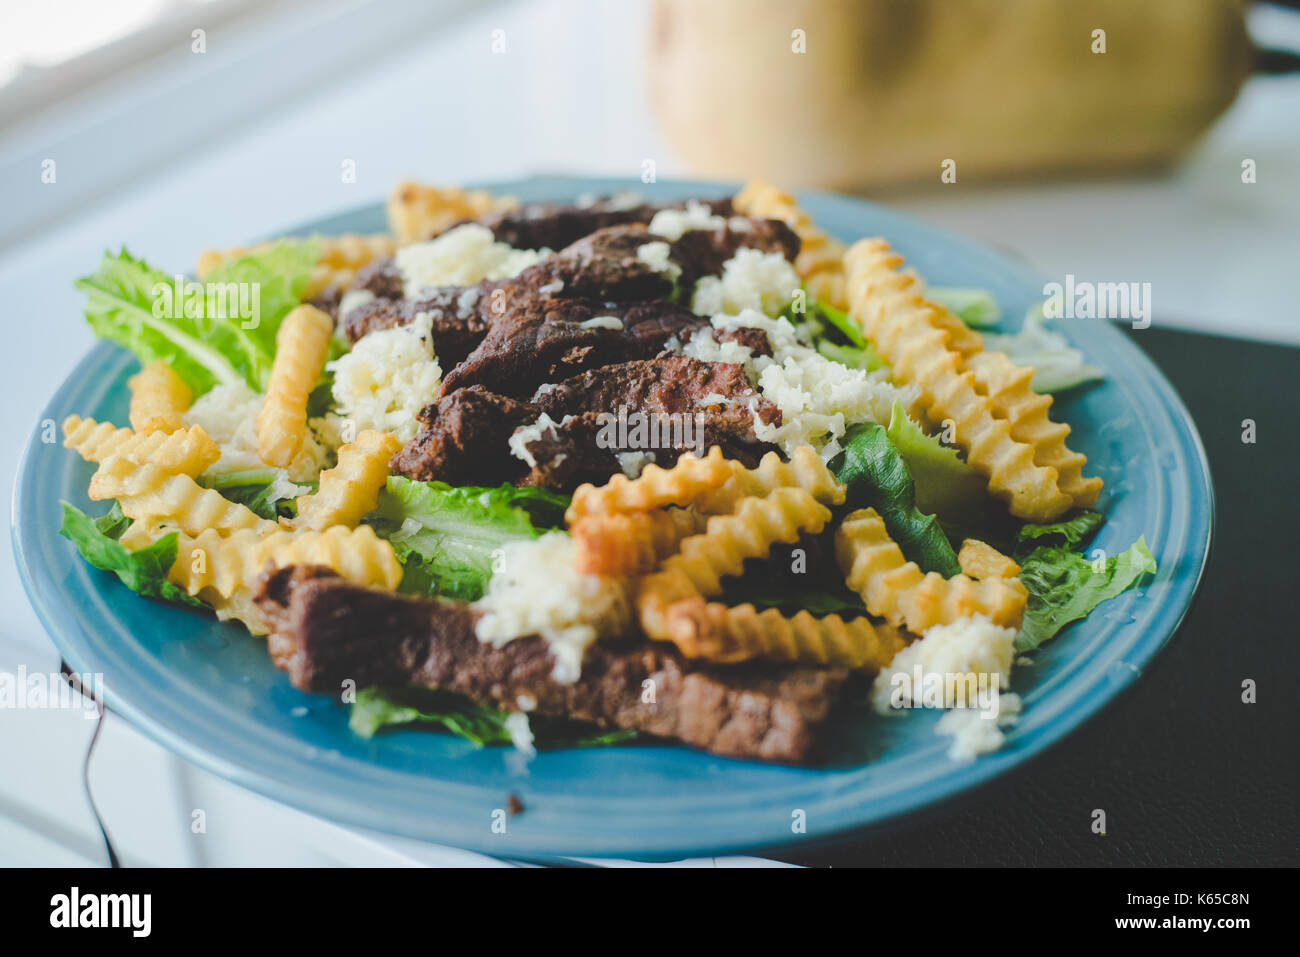 A plate of a steak salad with french fries or chips. Stock Photo